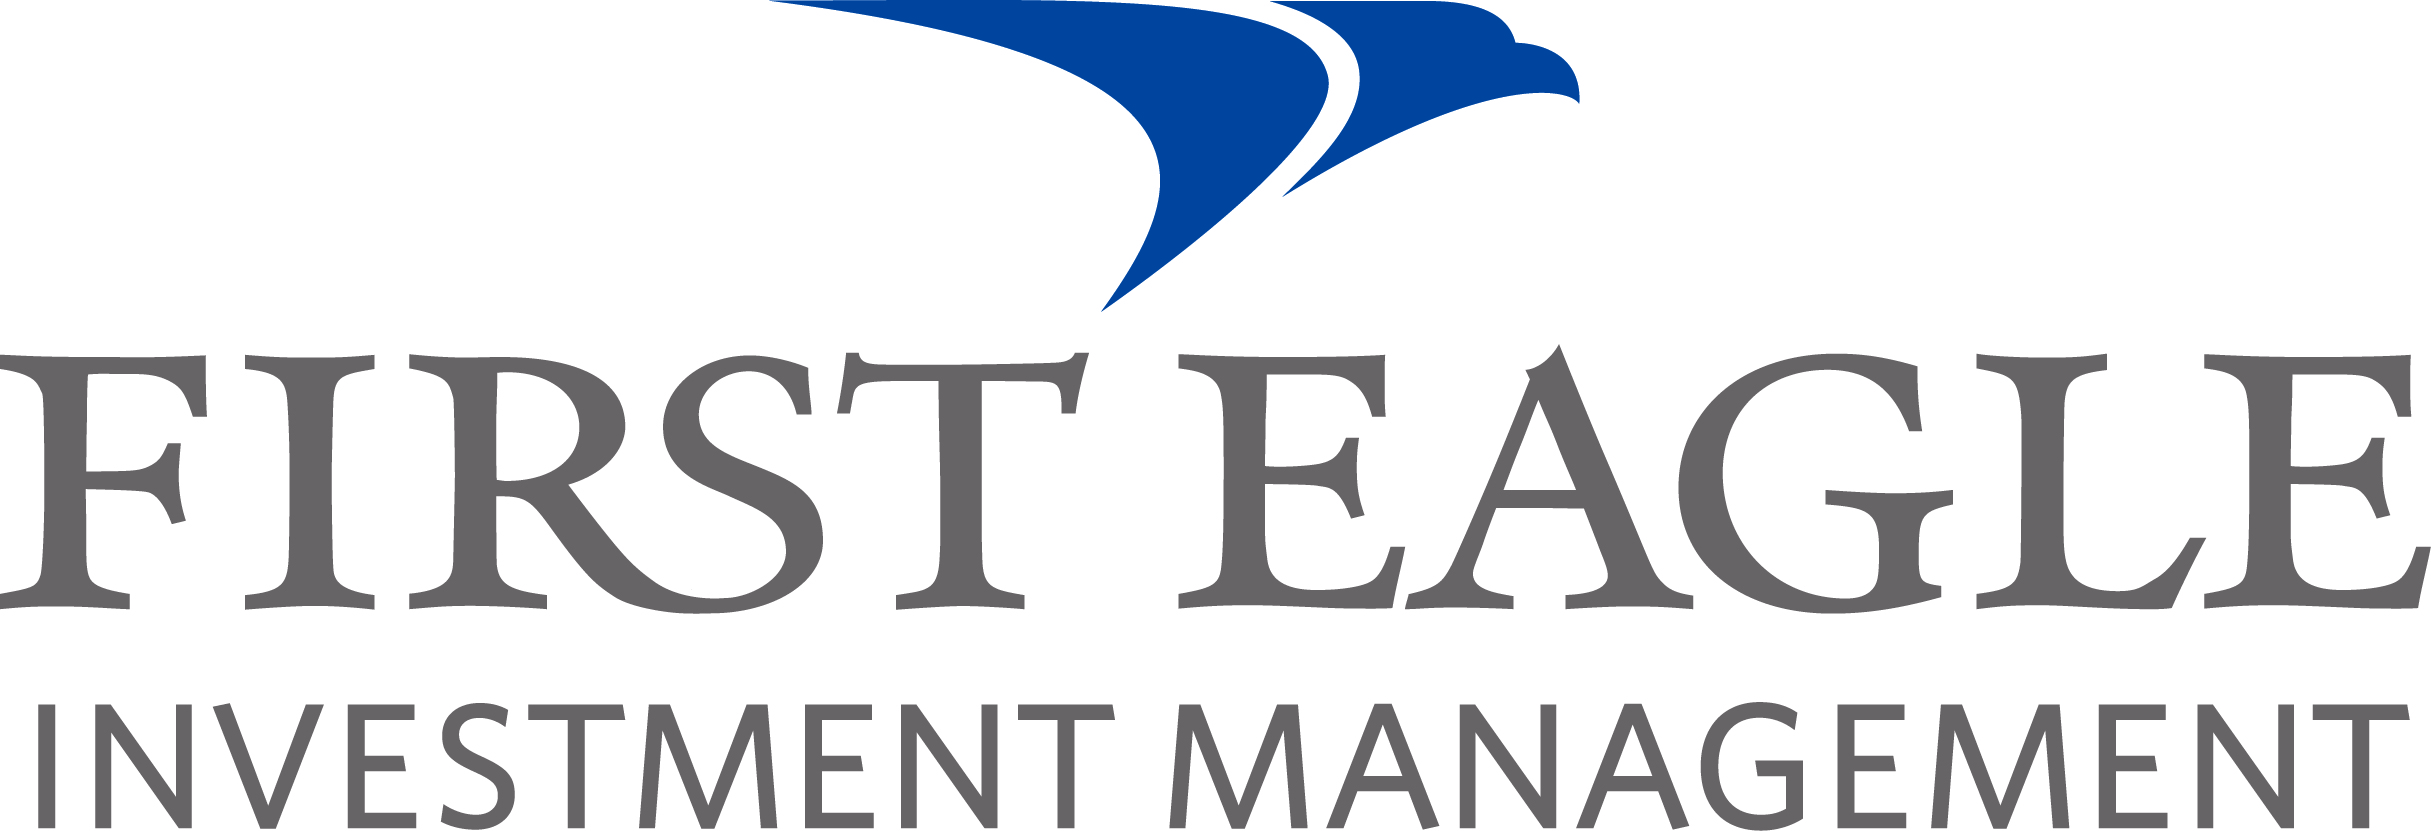 First Eagle Investment Management